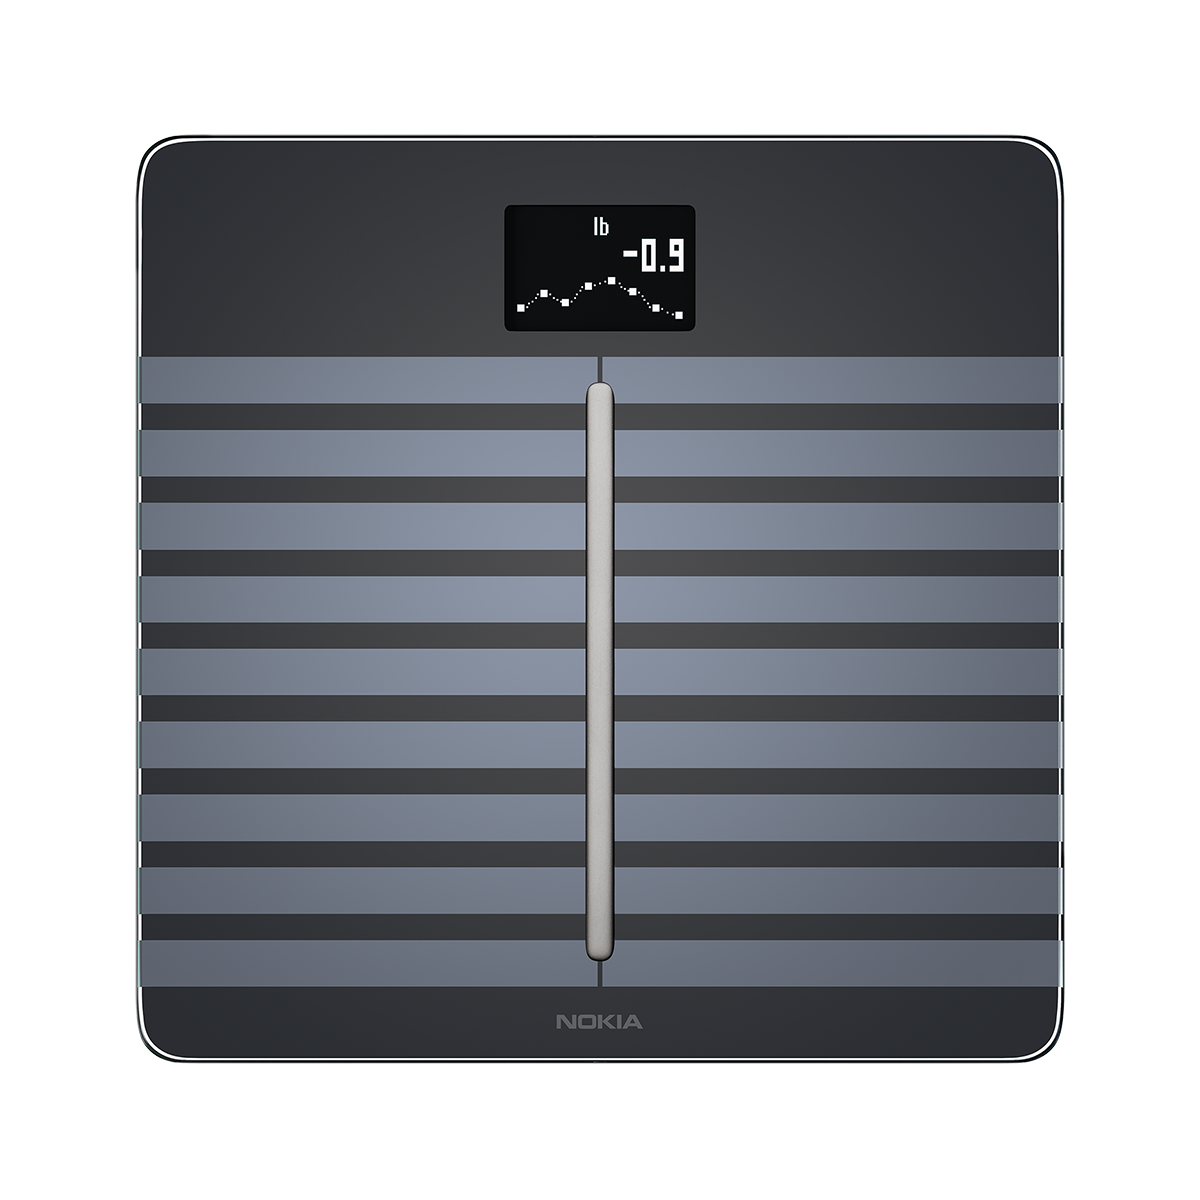 Withings Body Cardio (Nokia), Black - Wi-Fi Smart Scale with Body Composition & Heart Rate - Body fat, Muscle mass - Withings Official Store